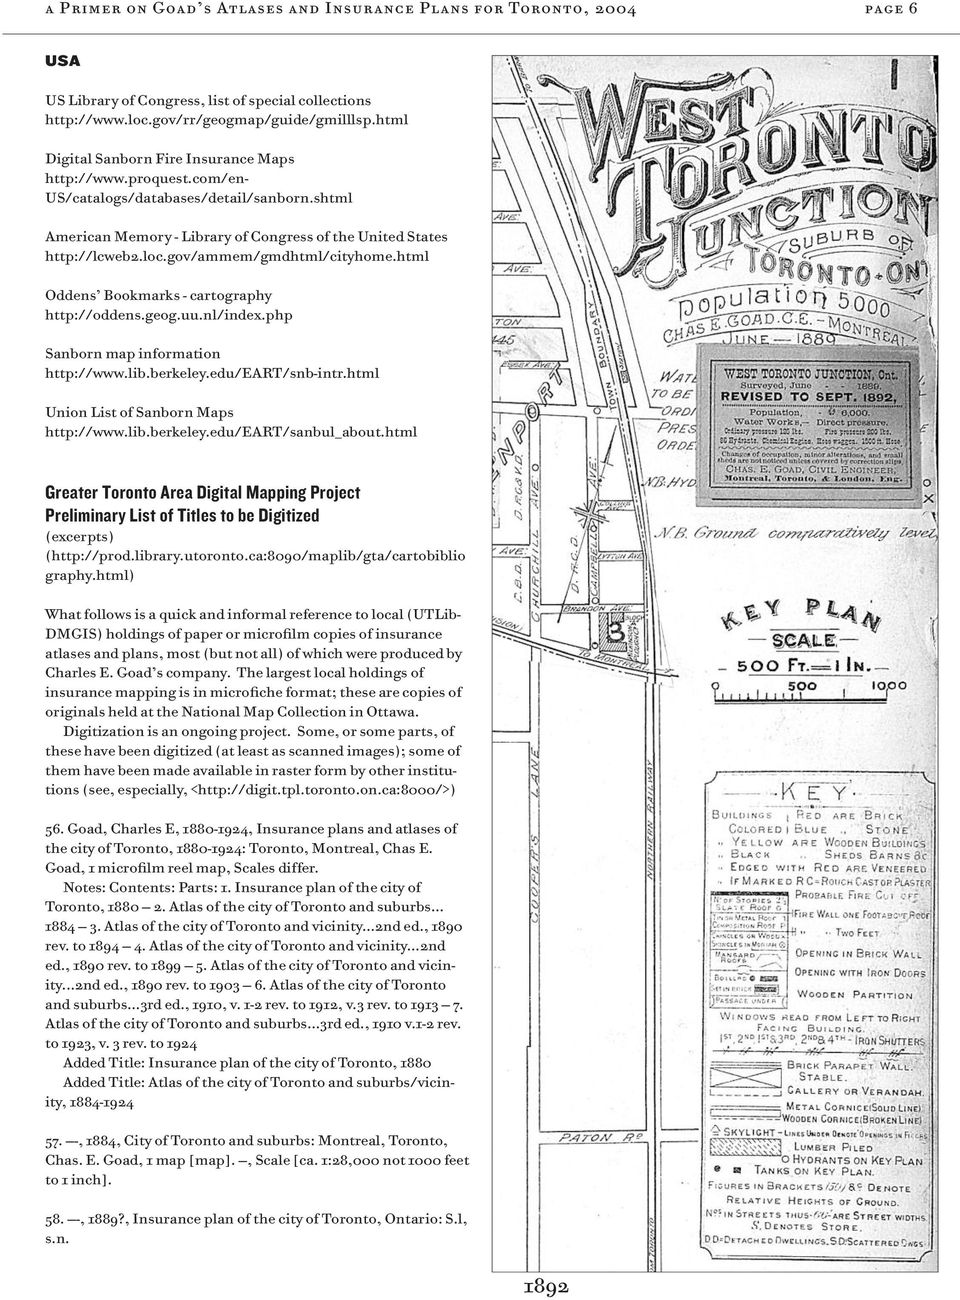 gov/ammem/gmdhtml/cityhome.html Oddens Bookmarks - cartography http://oddens.geog.uu.nl/index.php Sanborn map information http://www.lib.berkeley.edu/eart/snb-intr.